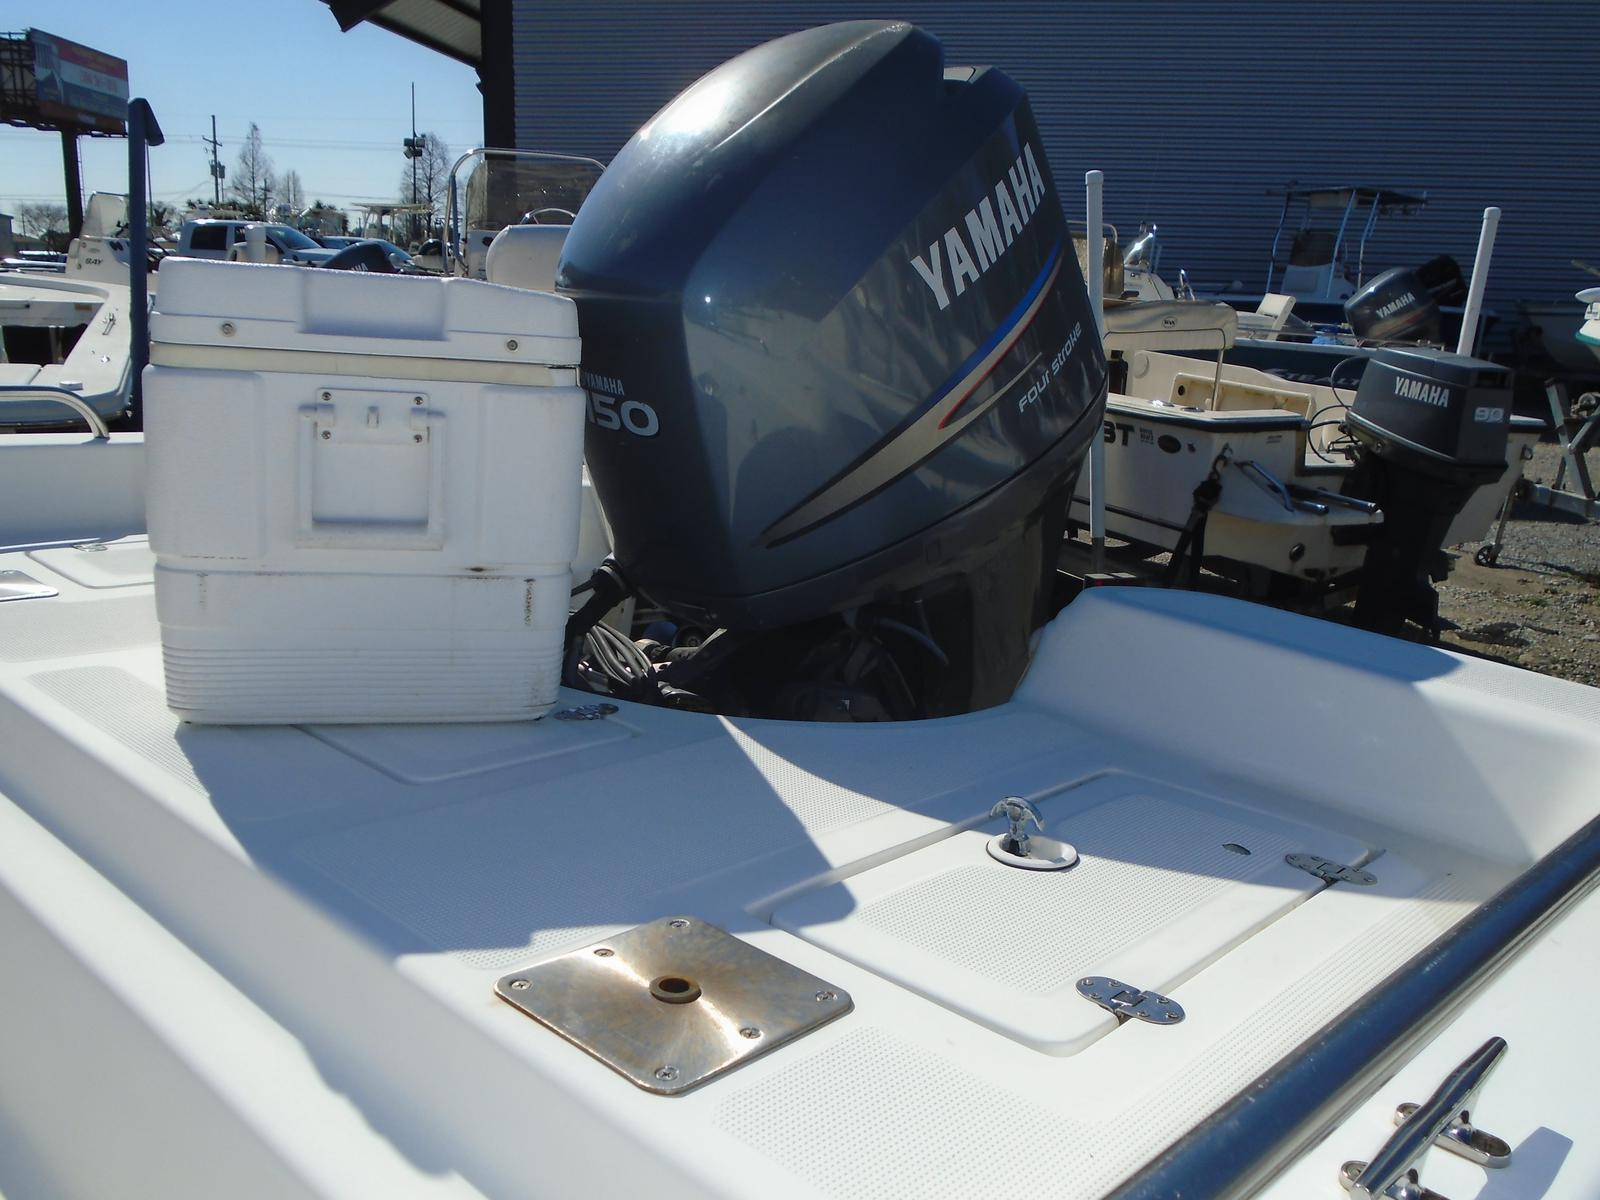 2006 Bay Stealth boat for sale, model of the boat is 2030 & Image # 9 of 12